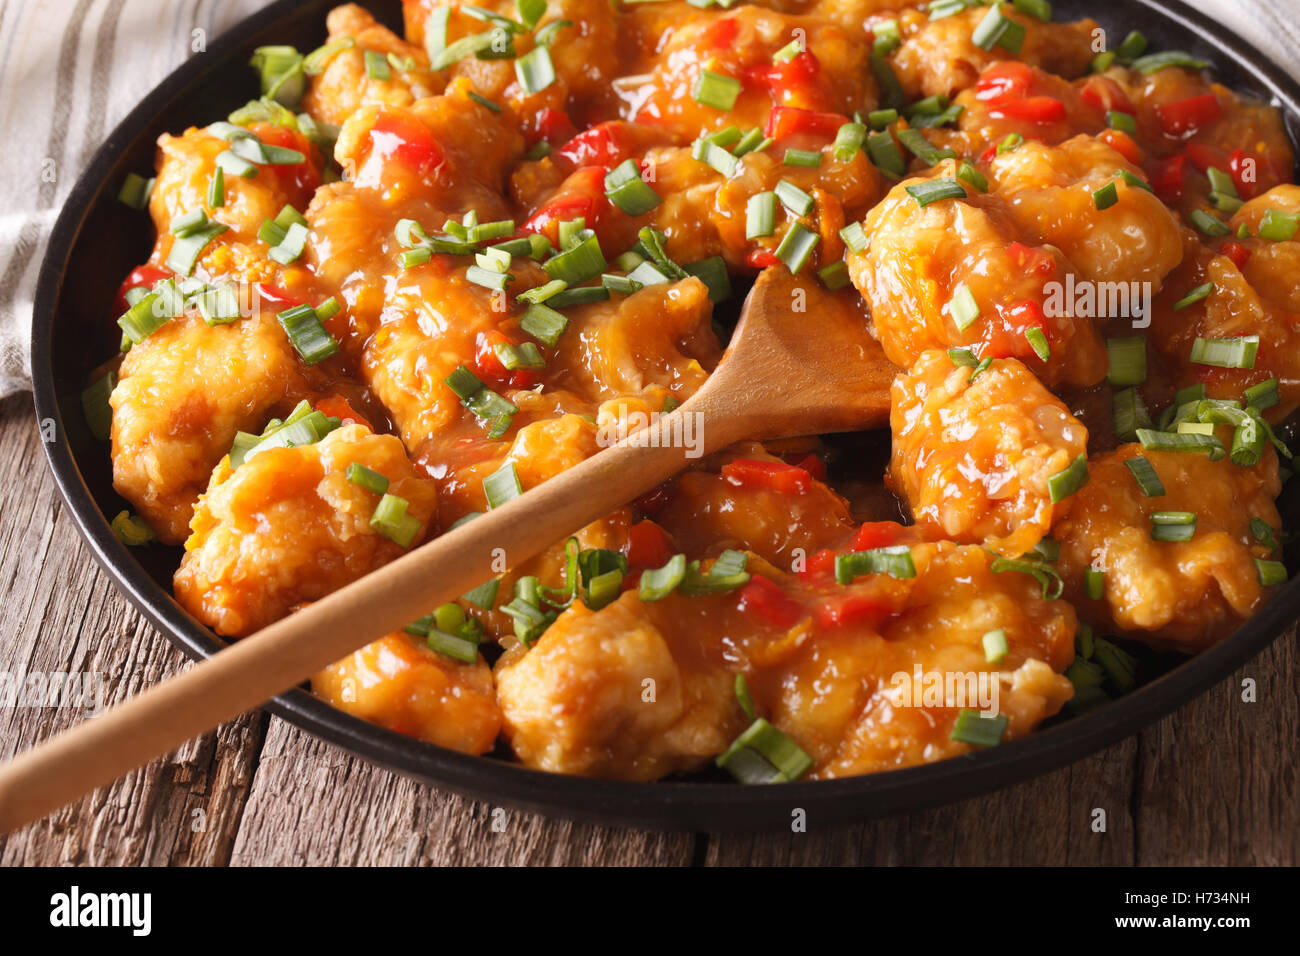 Spicy chicken in orange sauce closeup on a plate. Horizontal - Stock Image